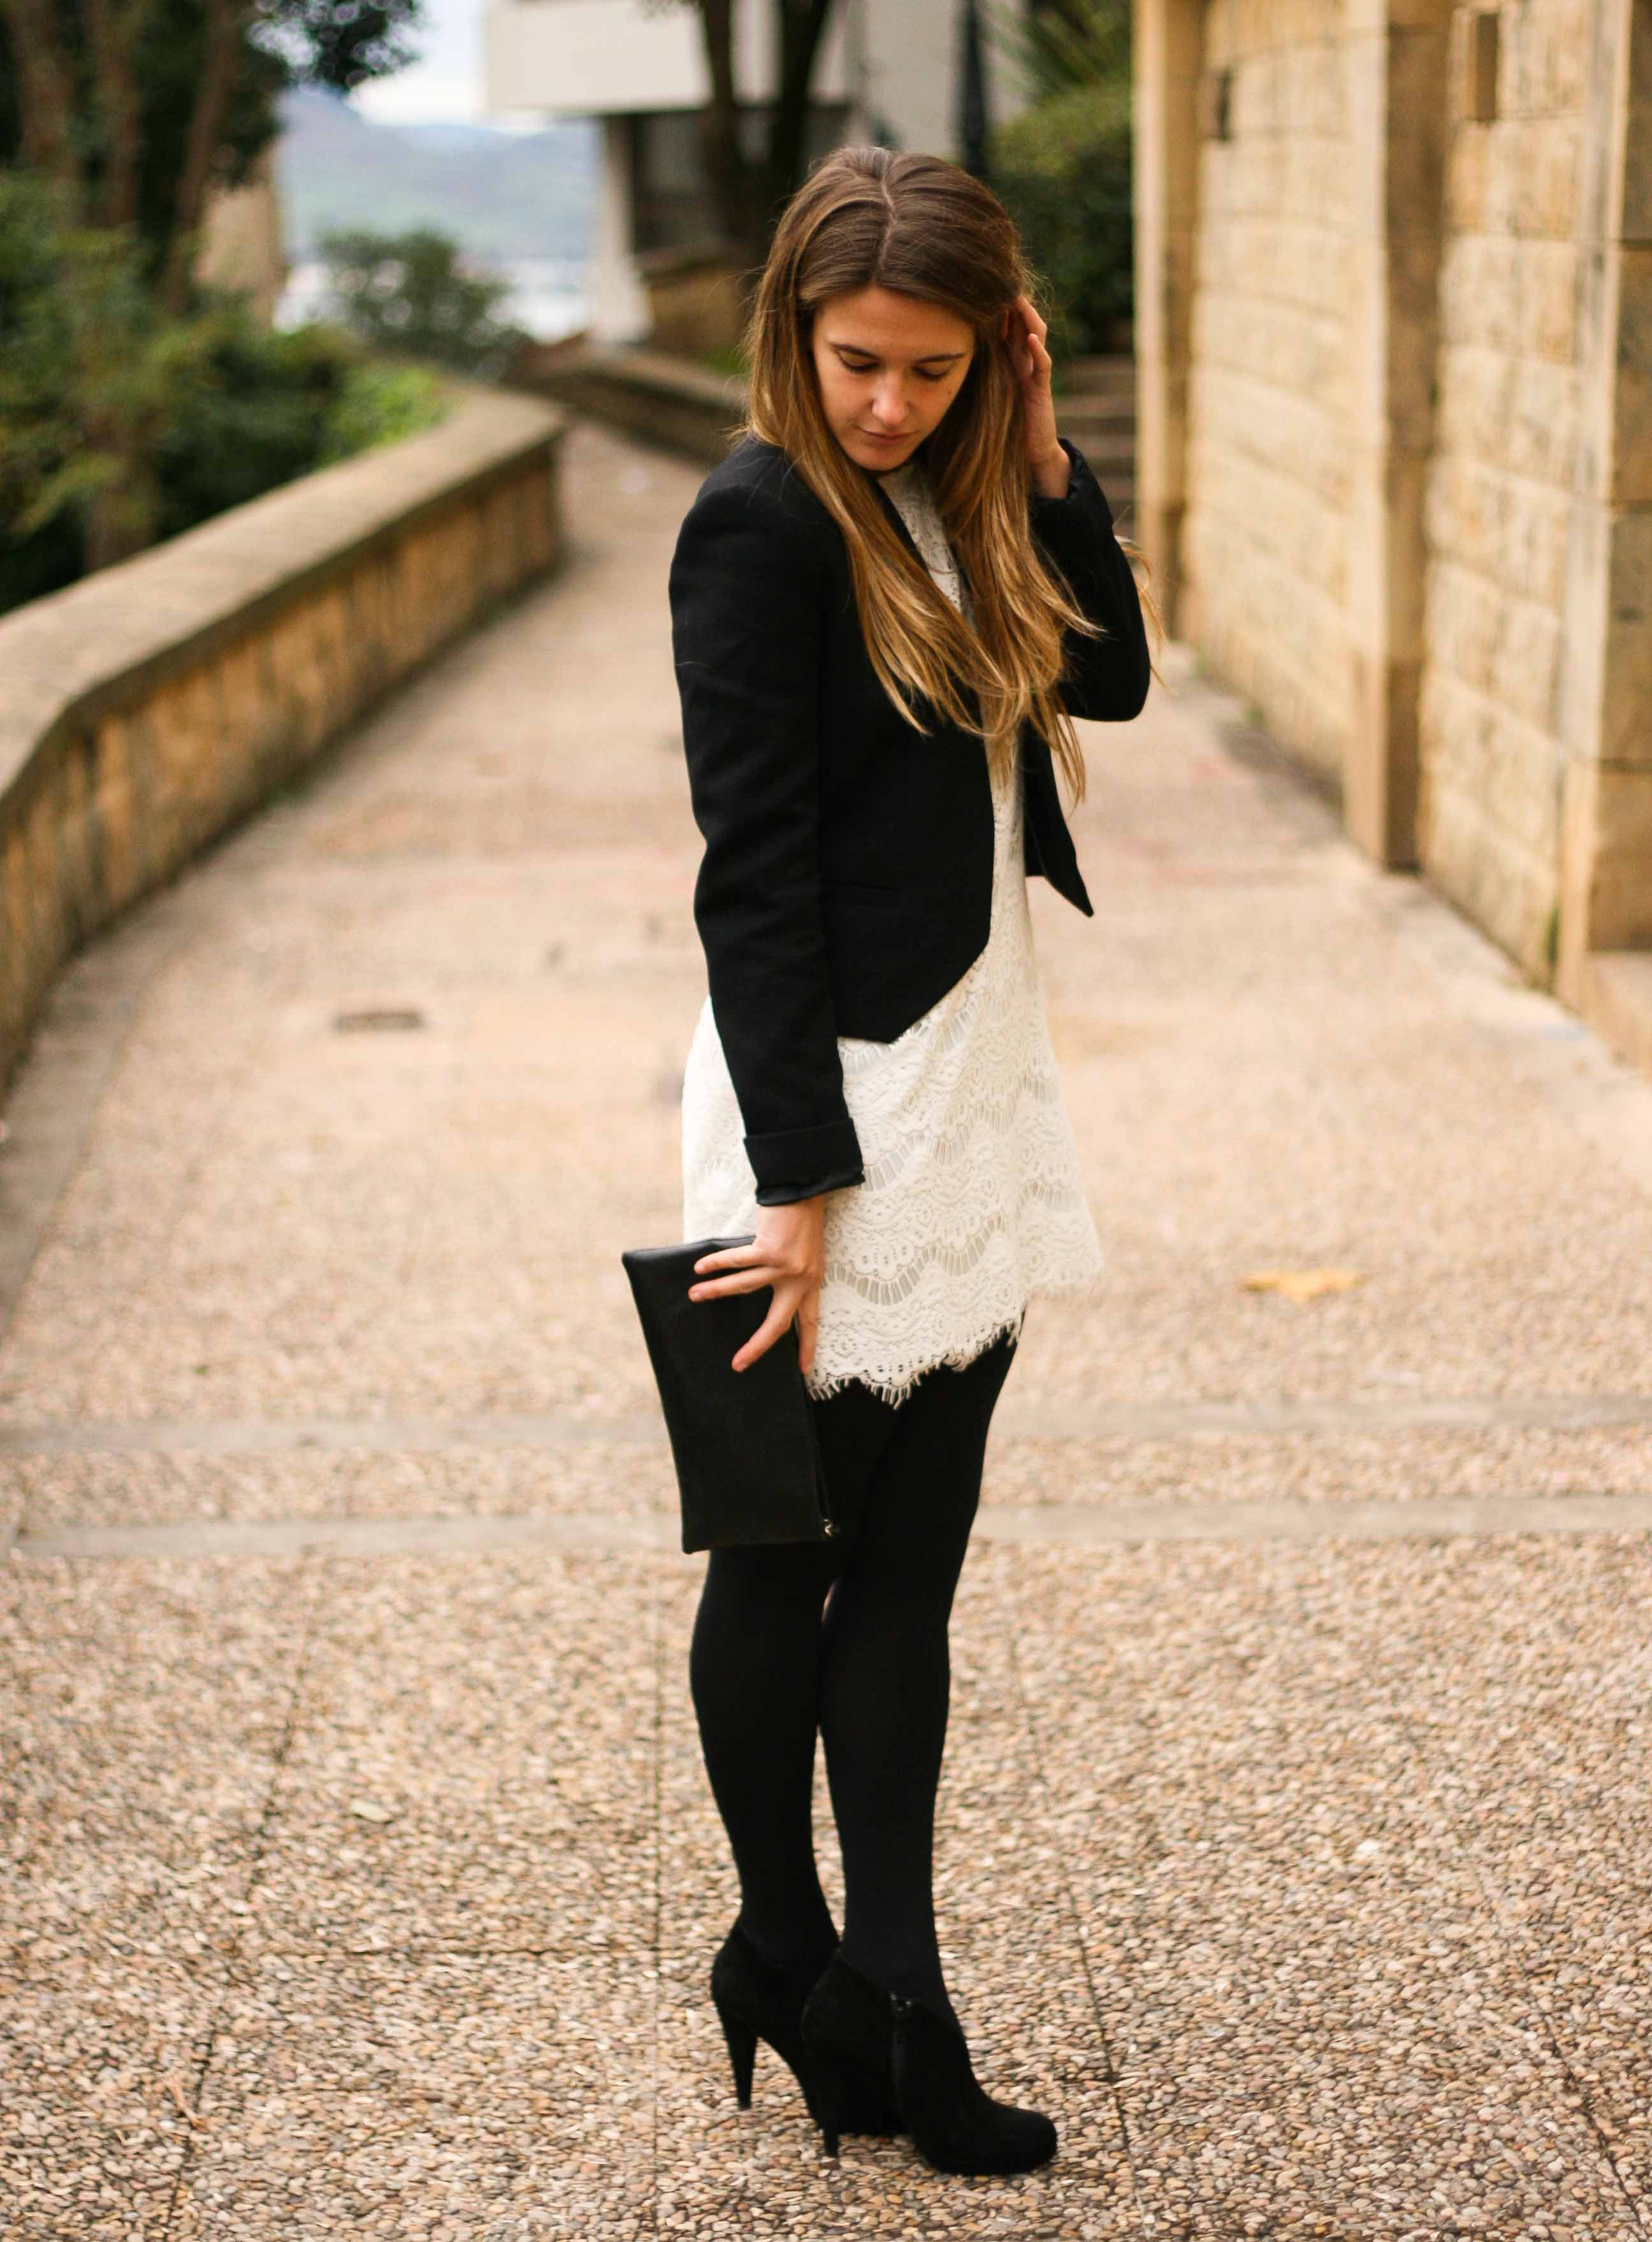 Winter White | Cafu00e9 Noir | Promod | Zara - Blog De Moda Clochet